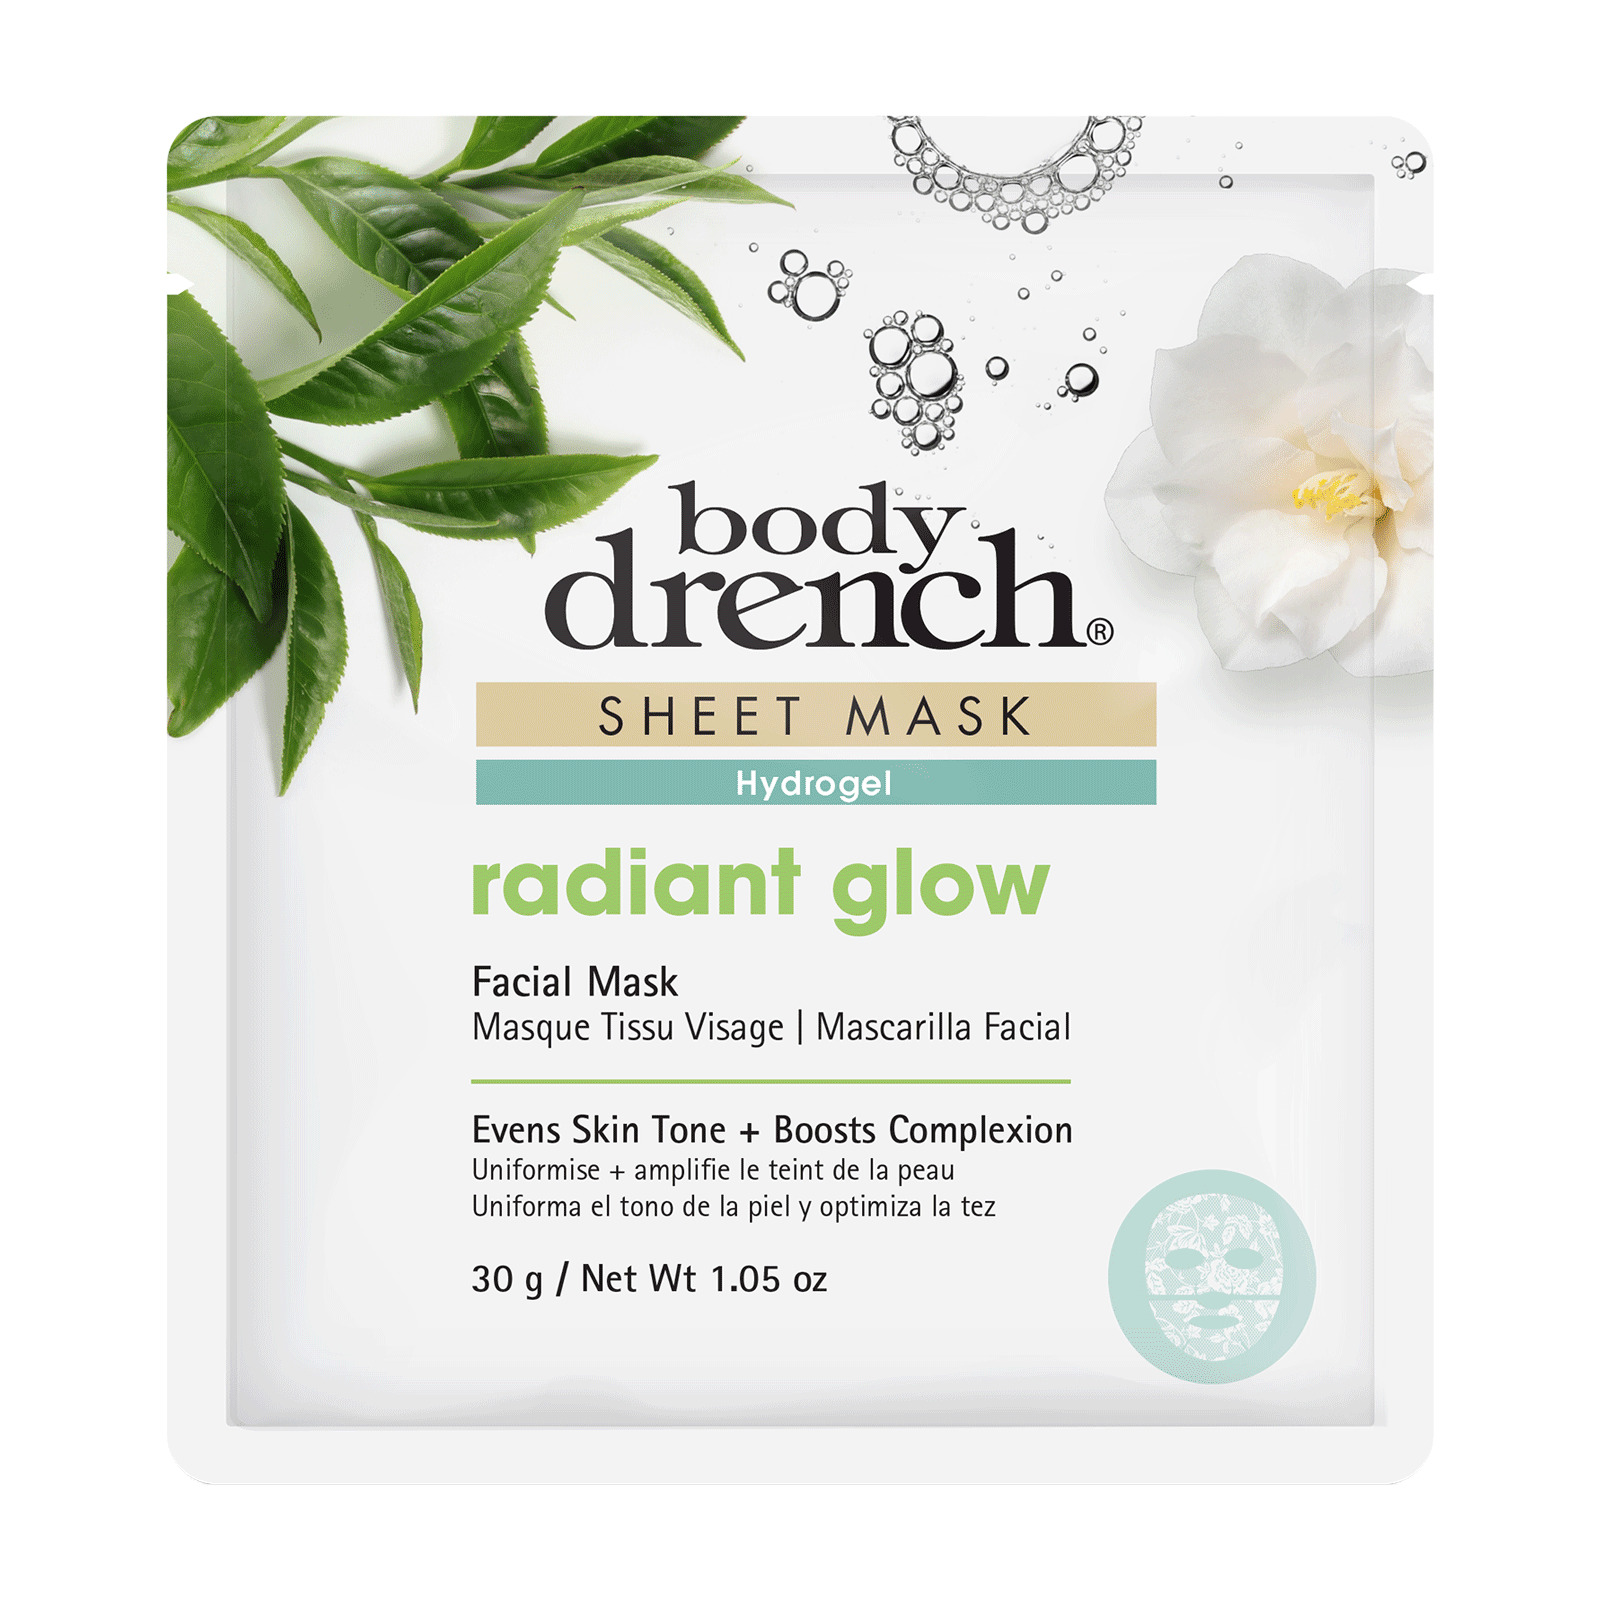 Radiant Glow Hydrogel Sheet Mask